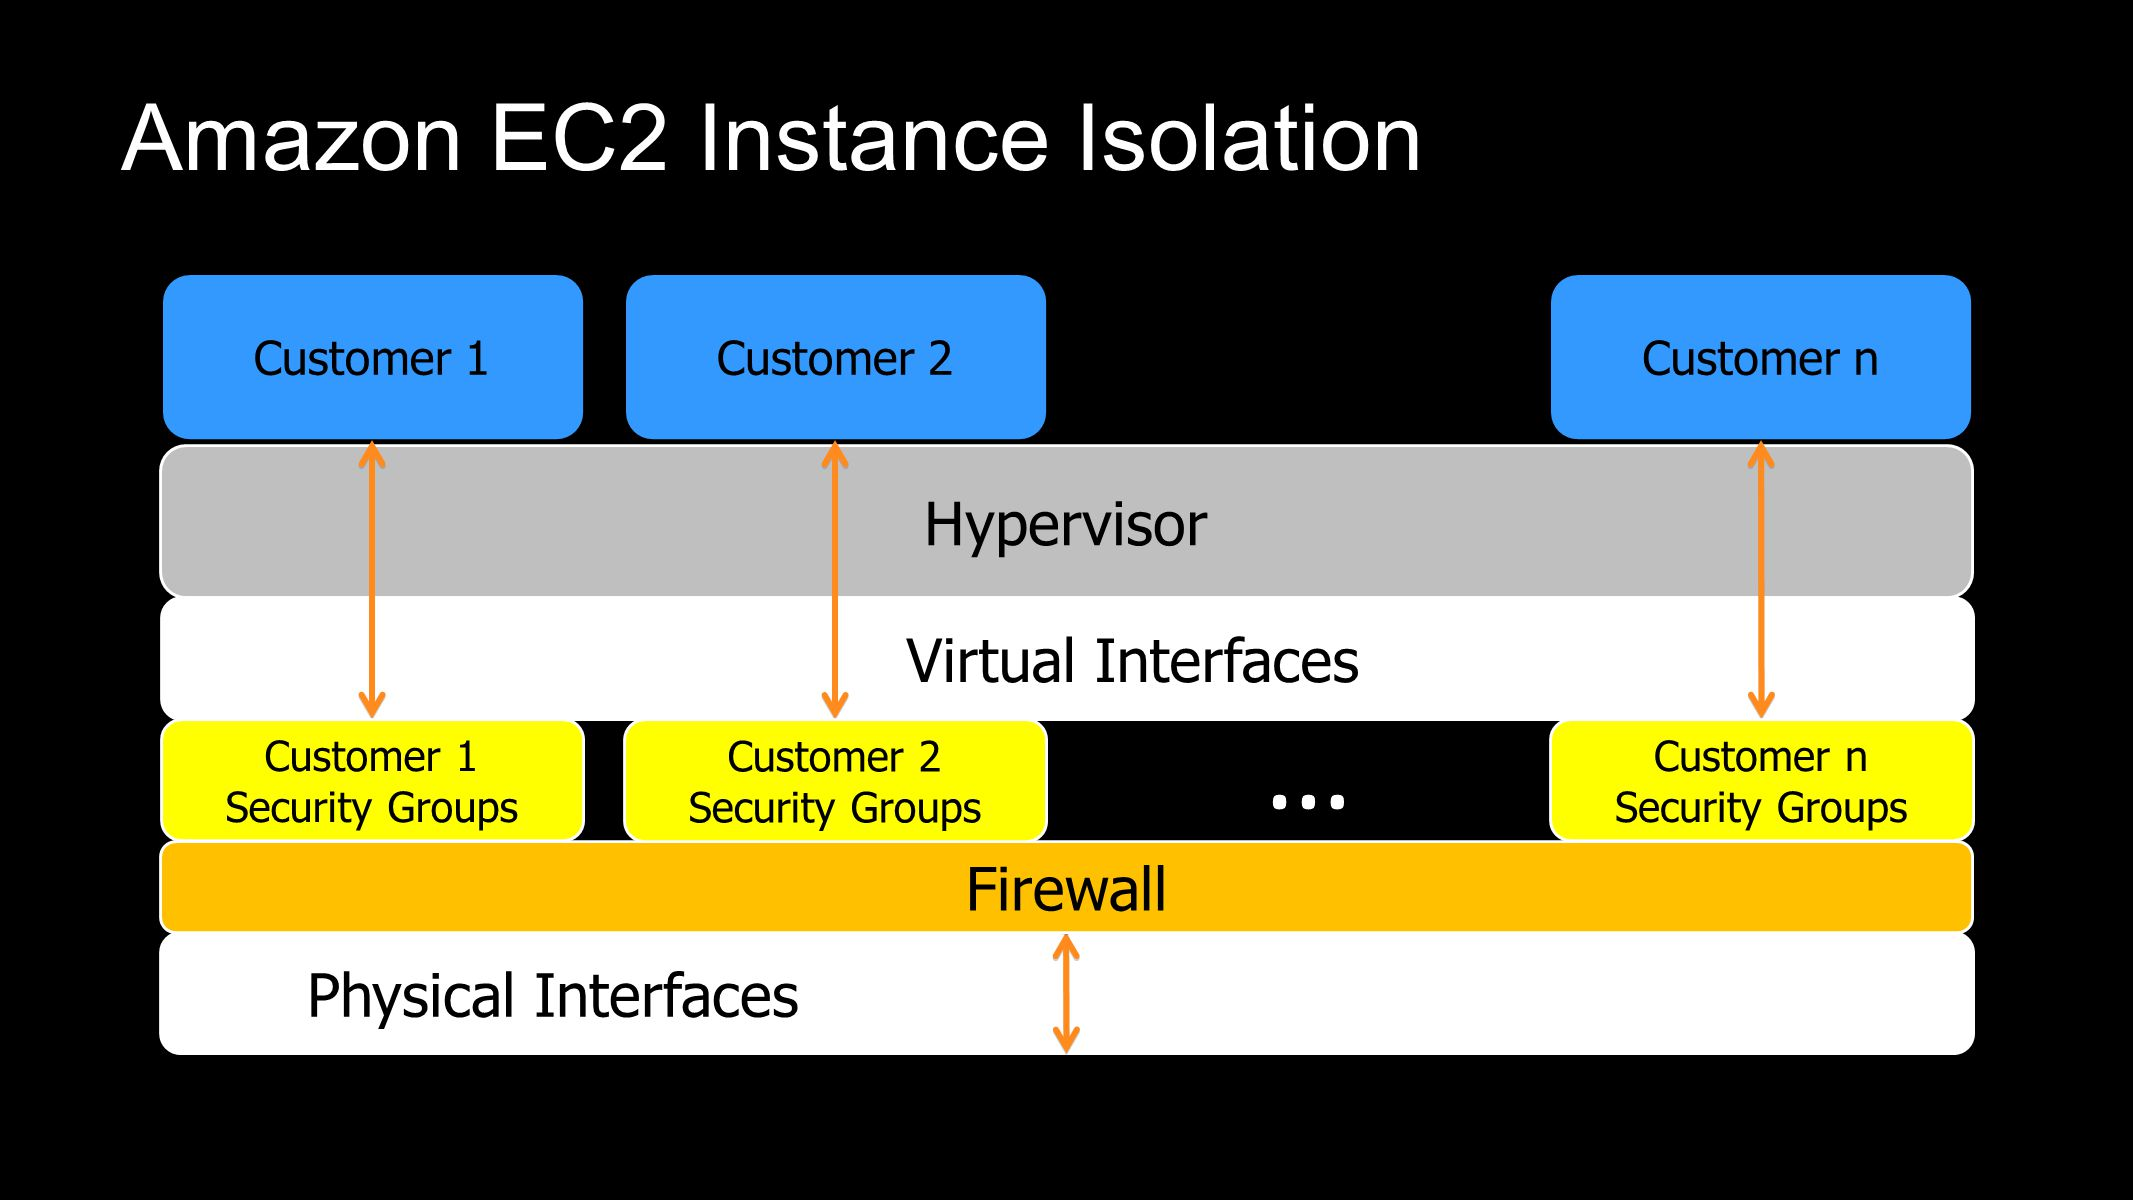 Amazon EC2 Instance Isolation